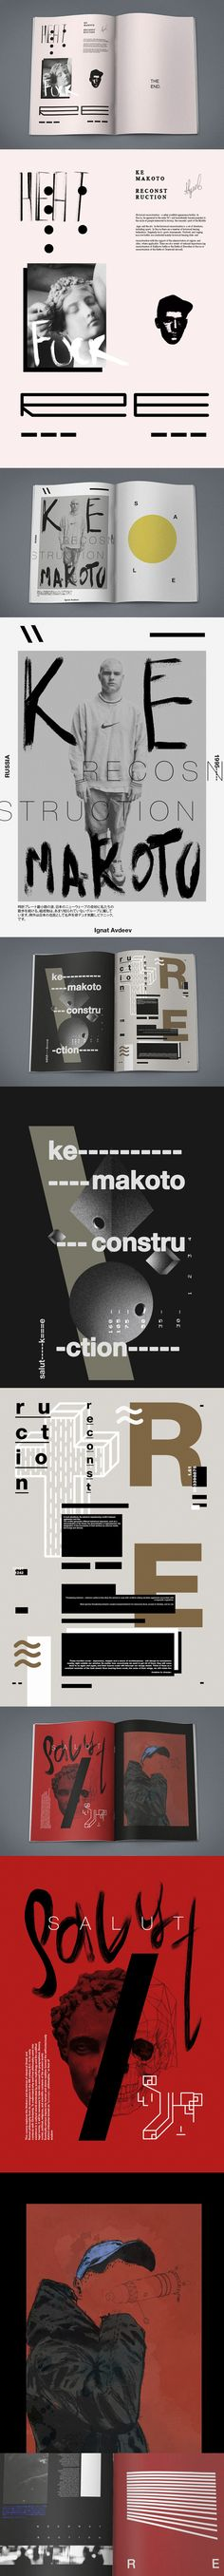 Ke Макото Reconstruction 2013 Art direction and layout: Ignat Avdeev Size: 420x297mm (open size)